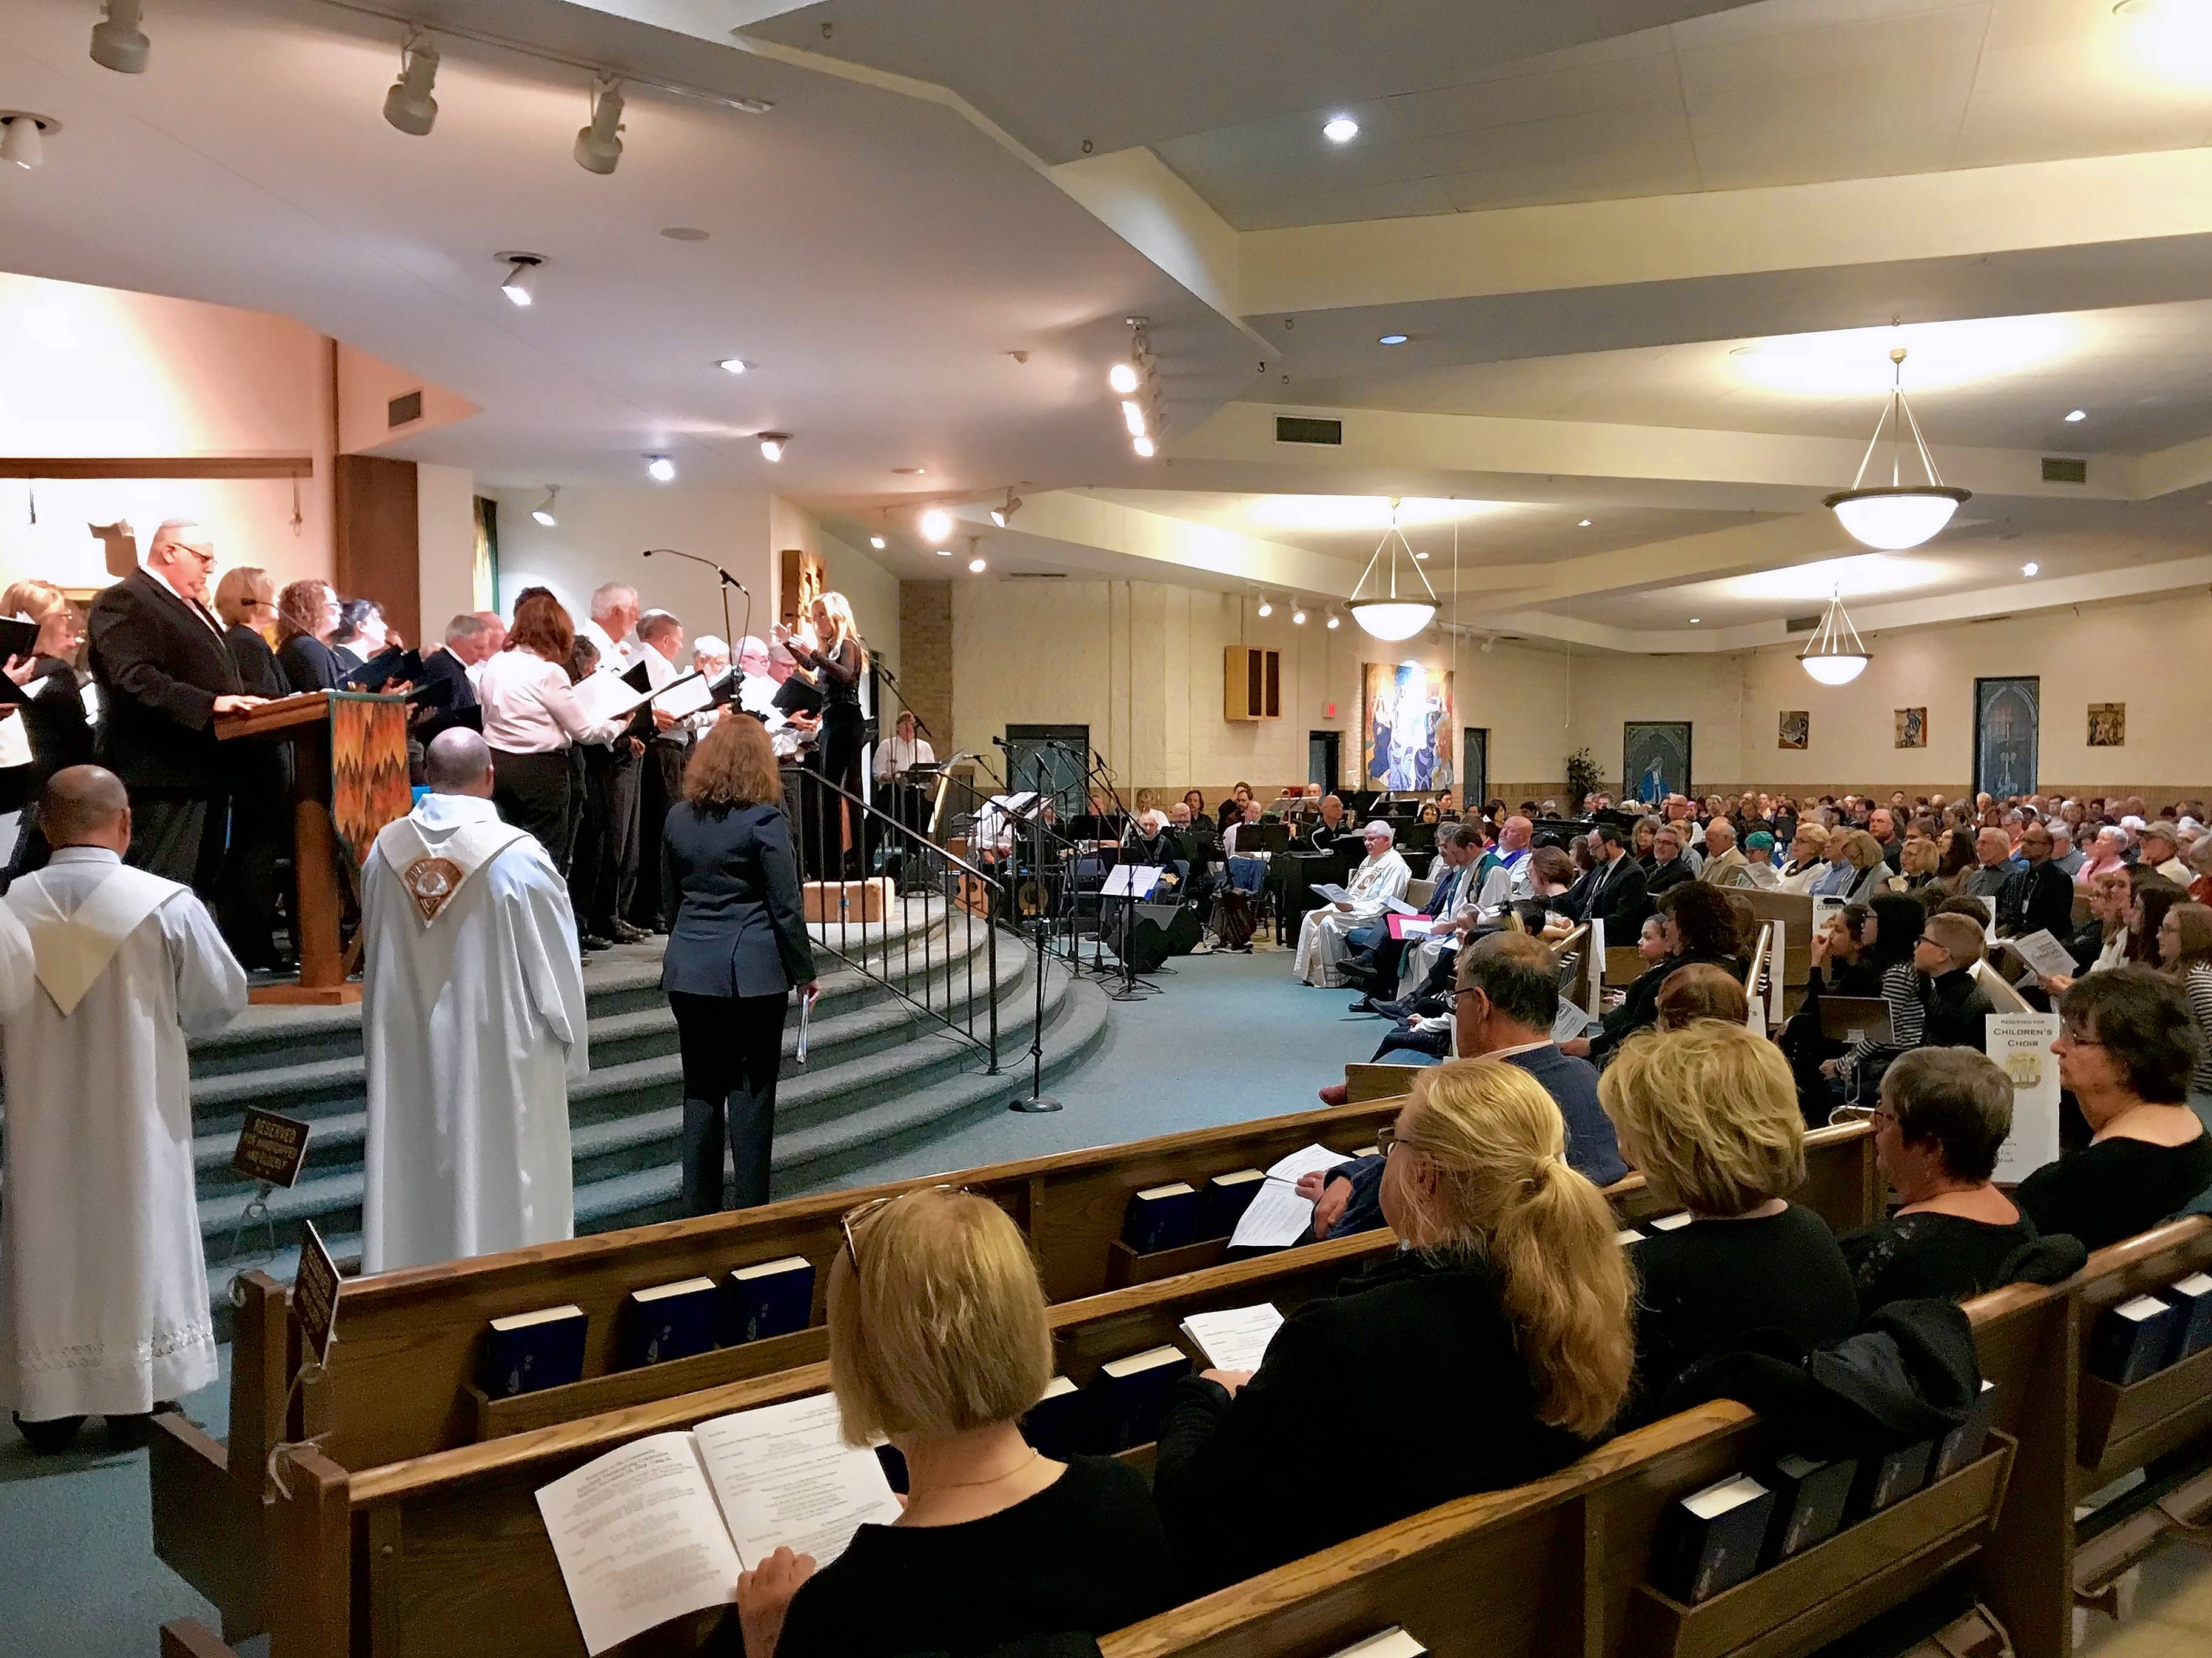 Religious leaders and a combined congregational choir sings about peace and unity Sunday night during an interfaith Thanksgiving celebration in Buffalo Grove that drew nearly 1,000 people.